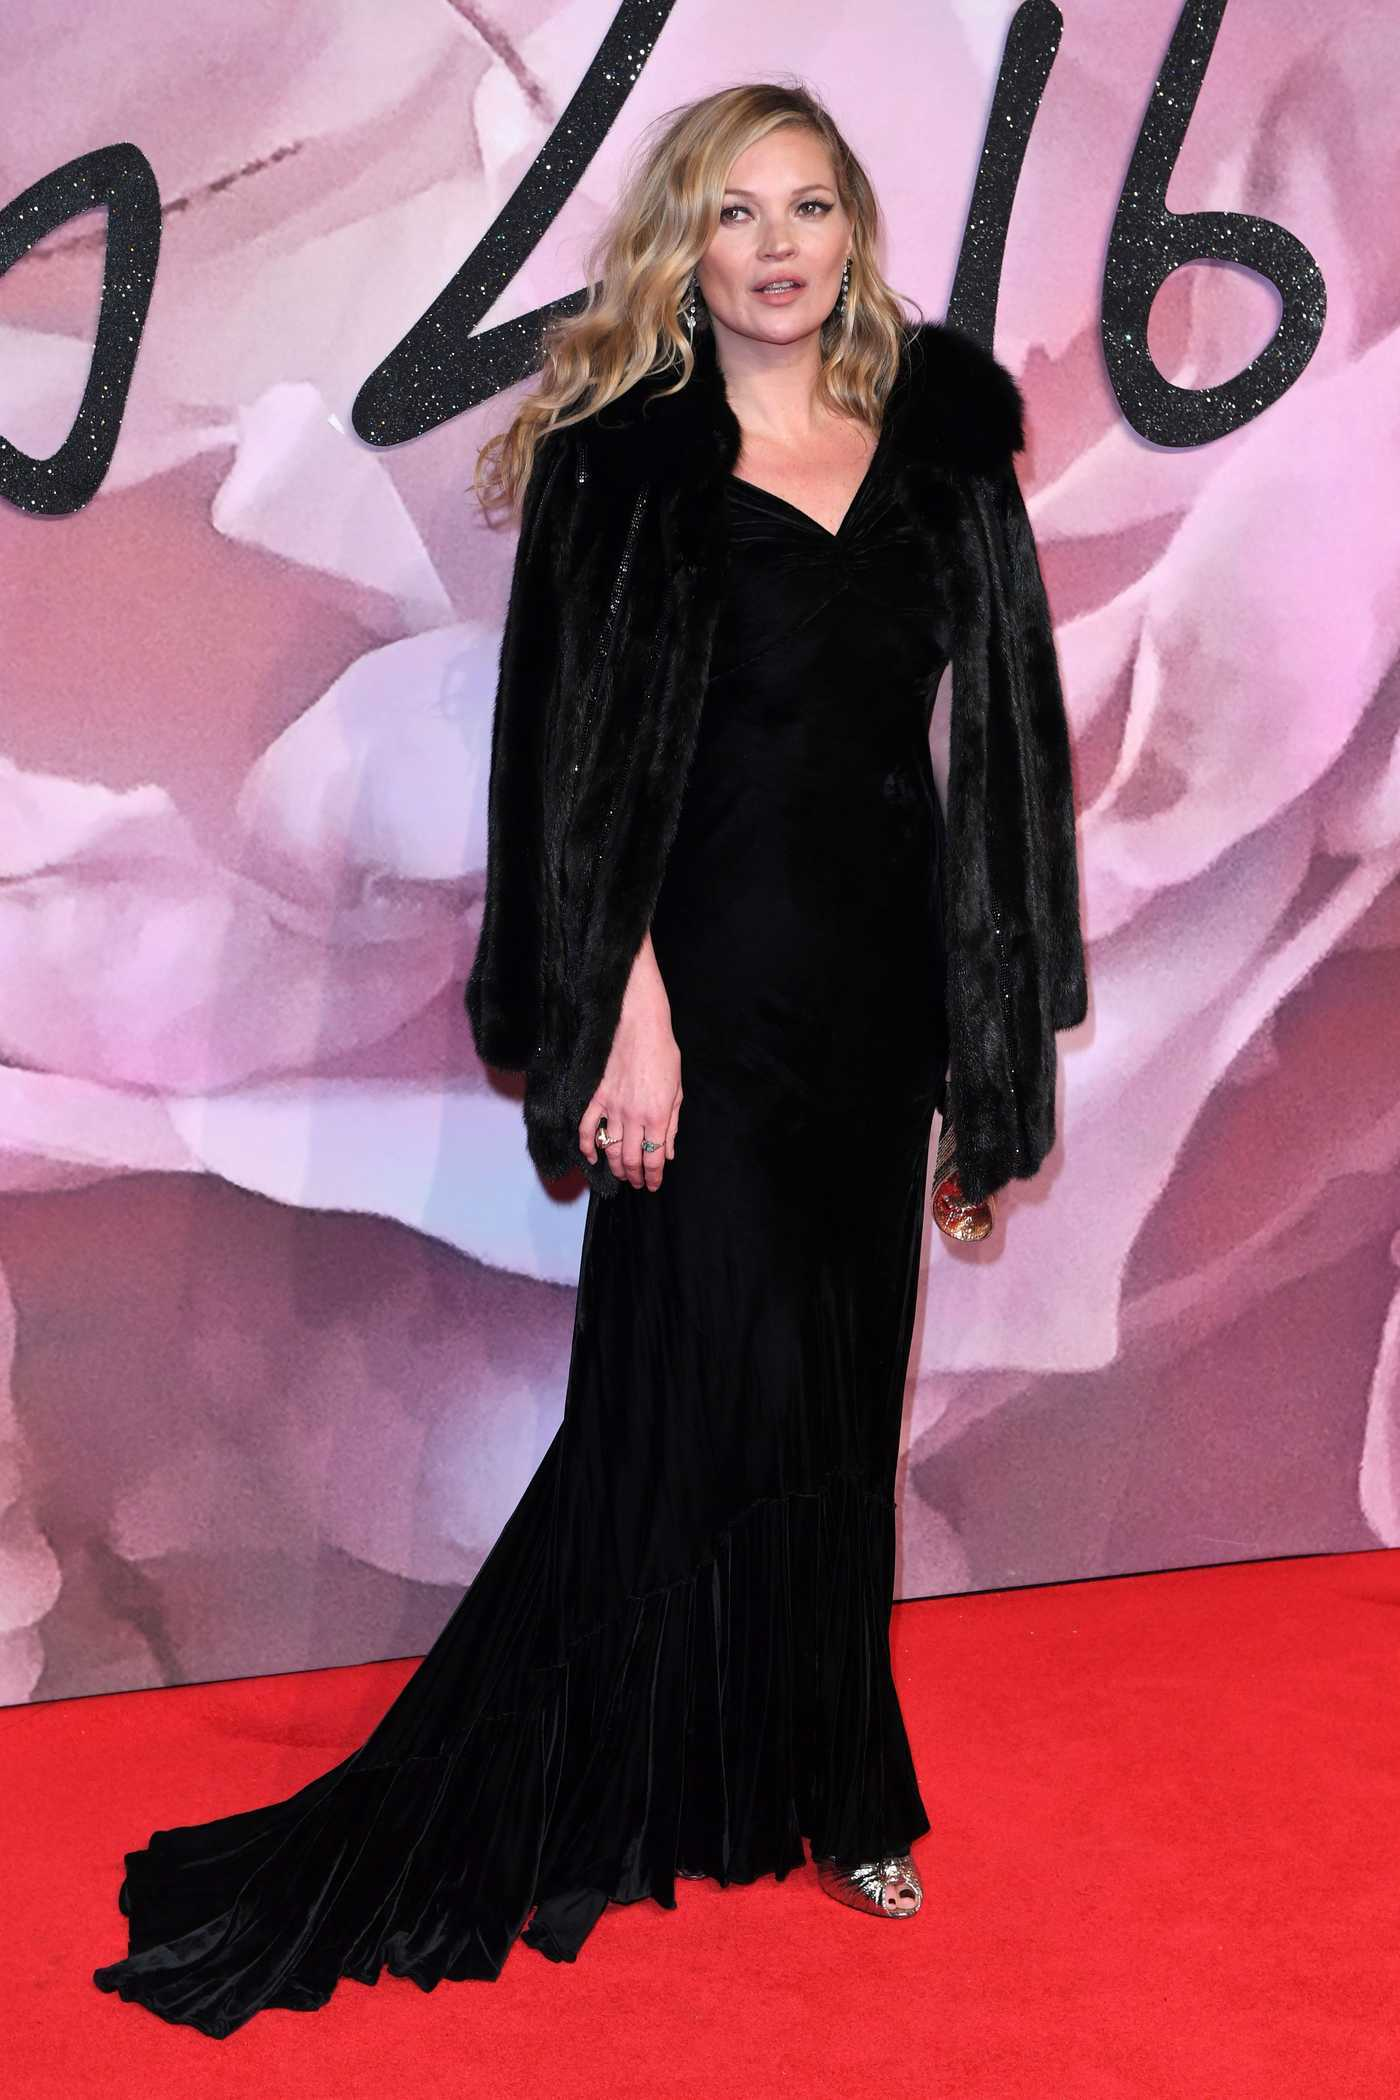 Kate Moss at the 2016 Fashion Awards at Royal Albert Hall in London 12/05/2016